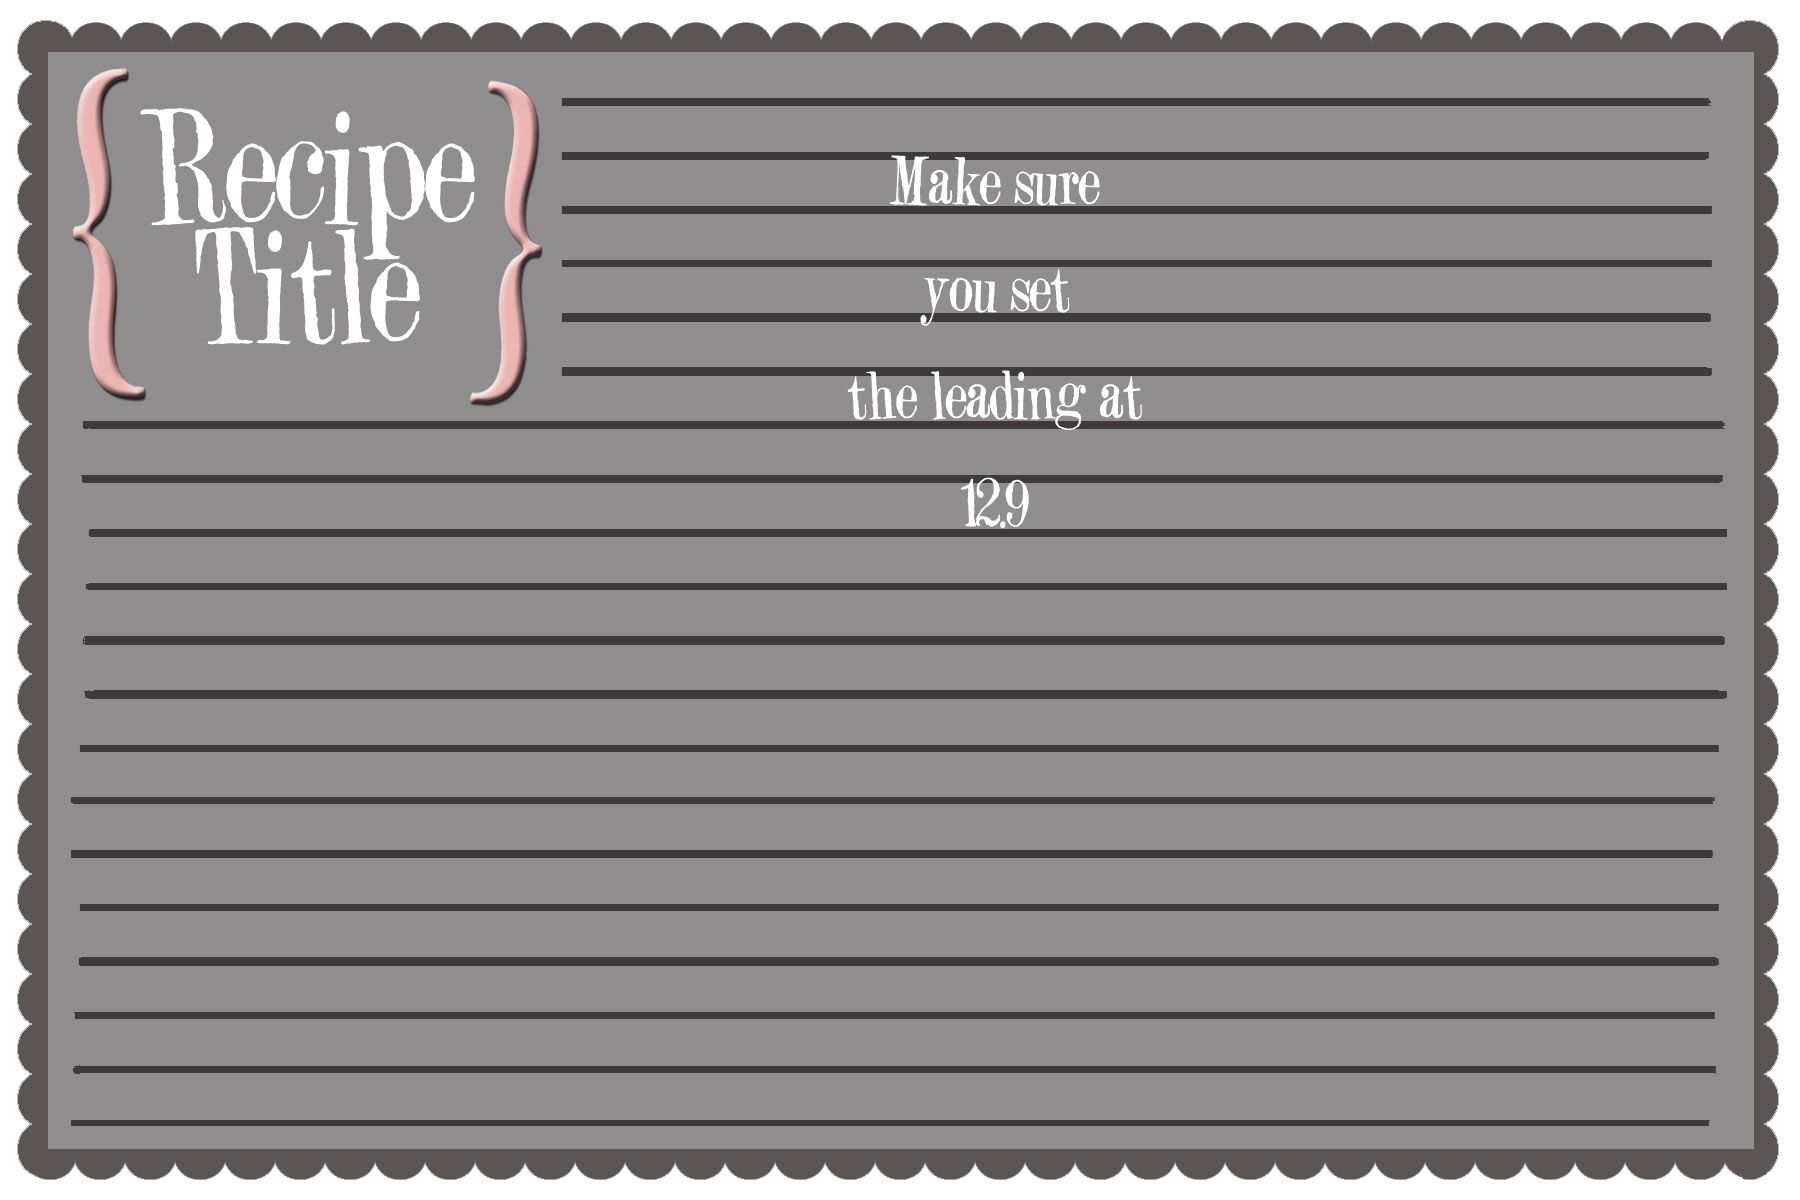 Templates For Recipe Cards fees receipt format – Word Template Recipe Card